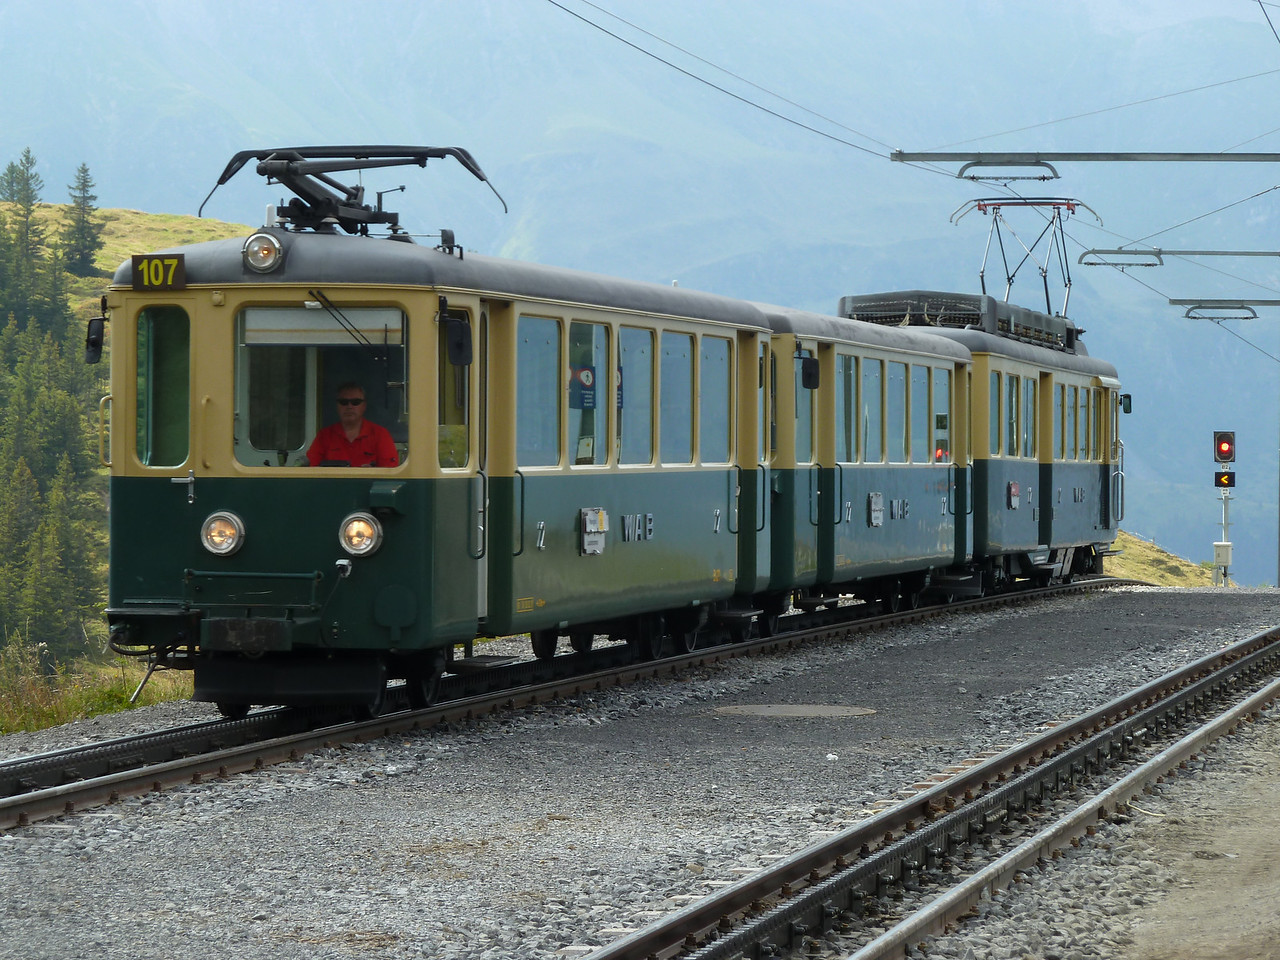 The ubiquitous mountain trains of the Grindelwald area.